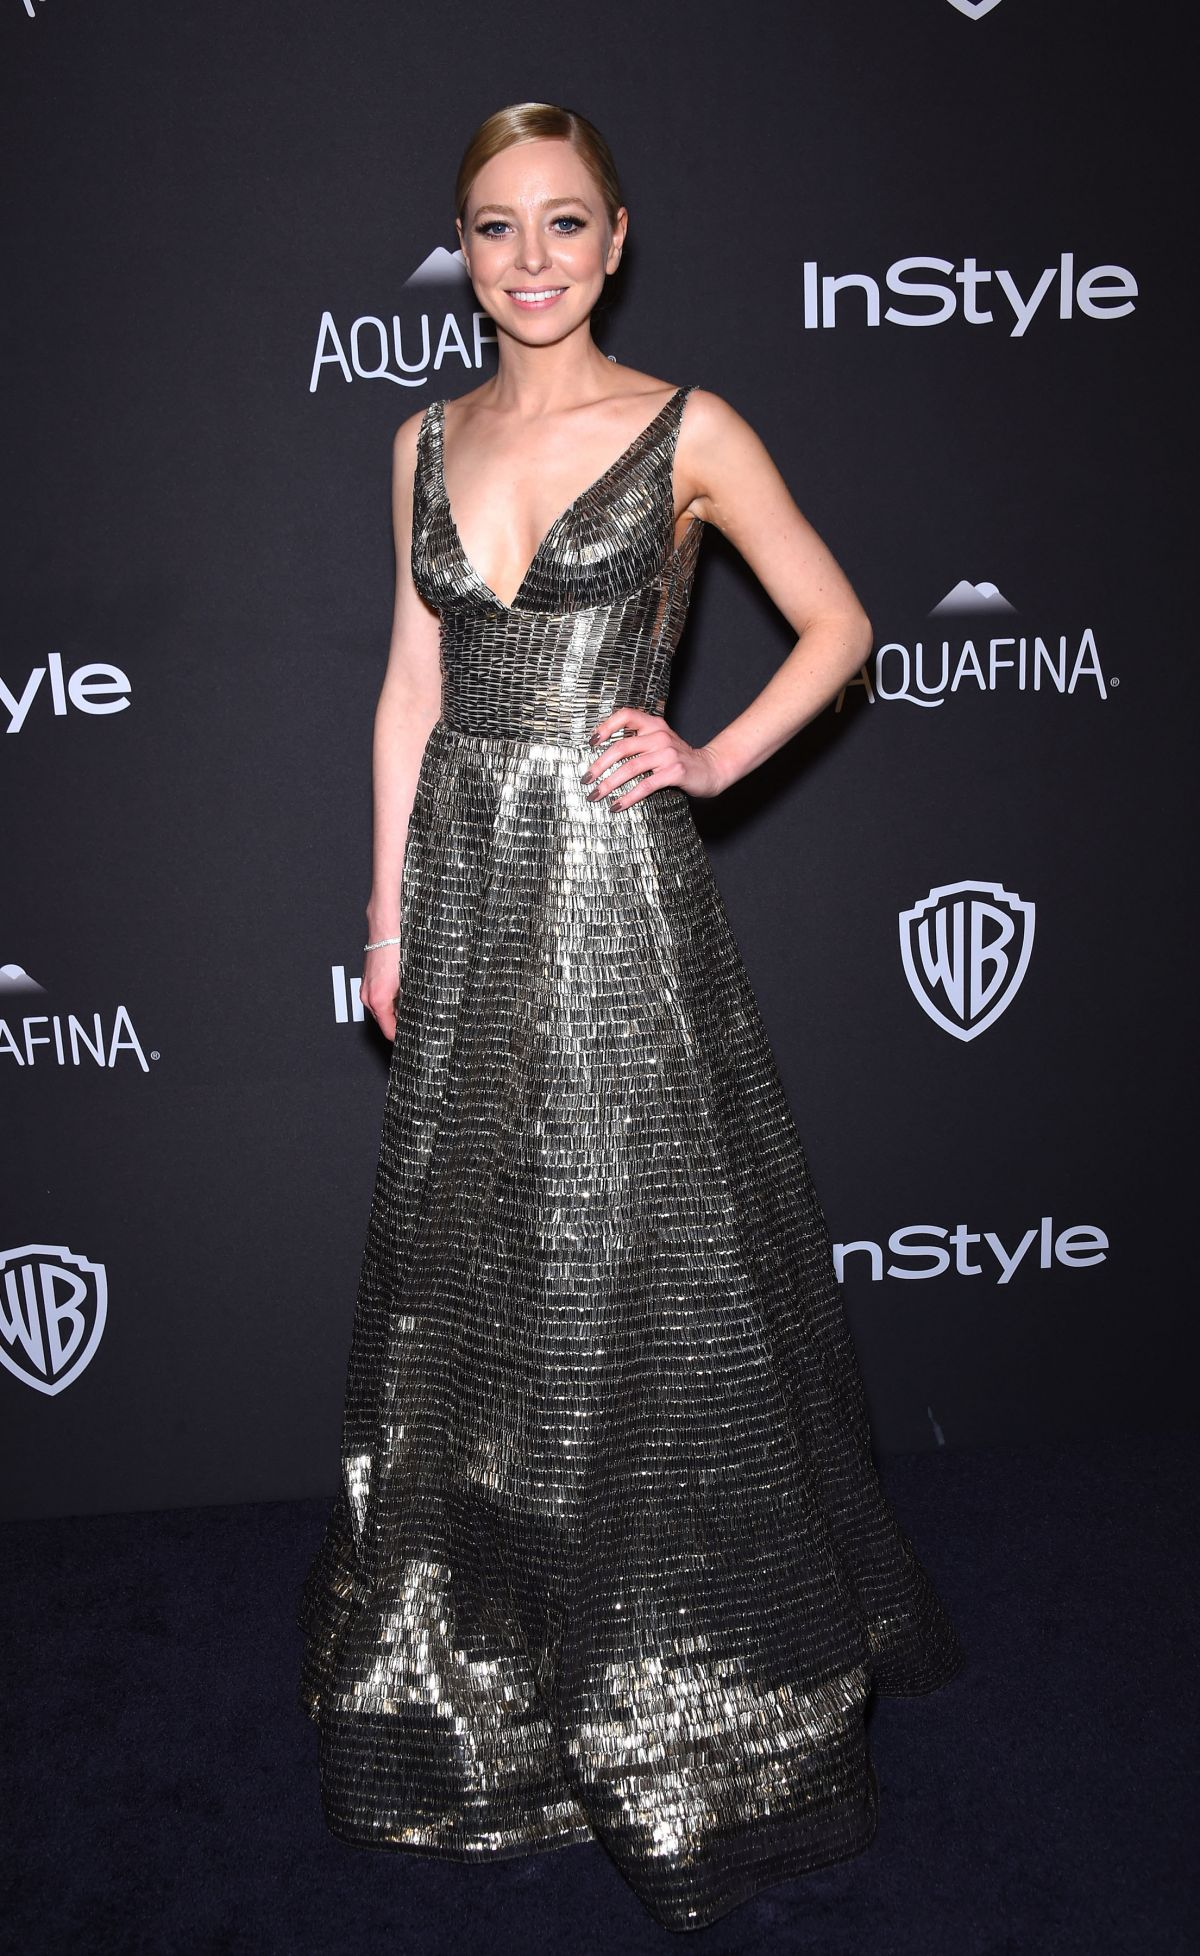 PORTIA DOUBLEDAY at Instyle and Warner Bros. 2016 Golden Globe Awards Post-party in Beverly Hills 01/10/2016